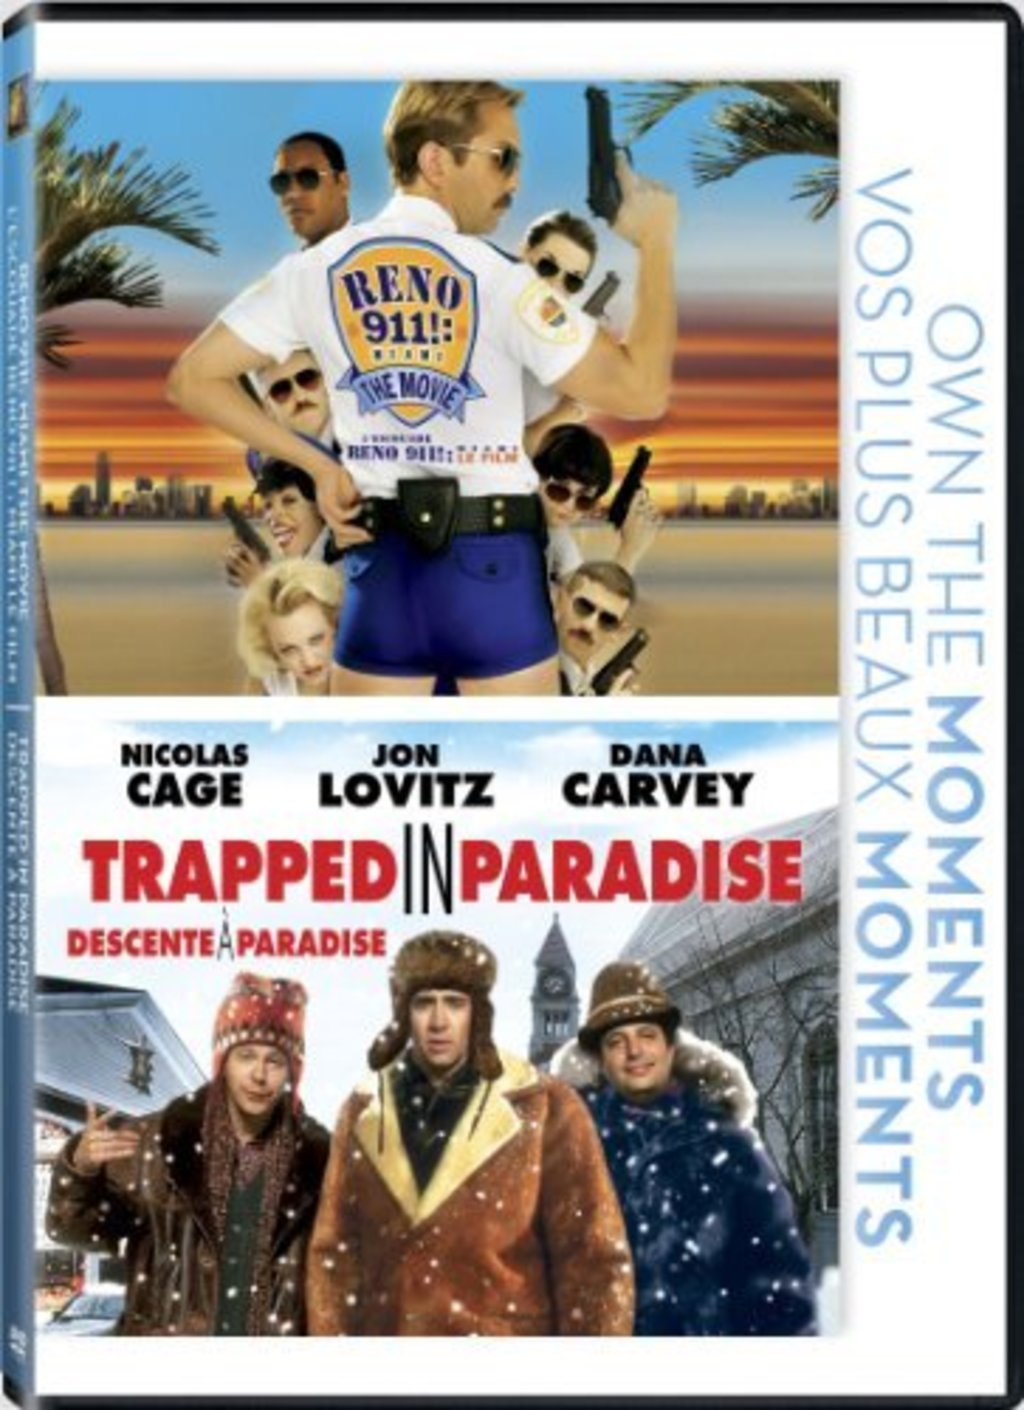 Trapped in paradise the movie